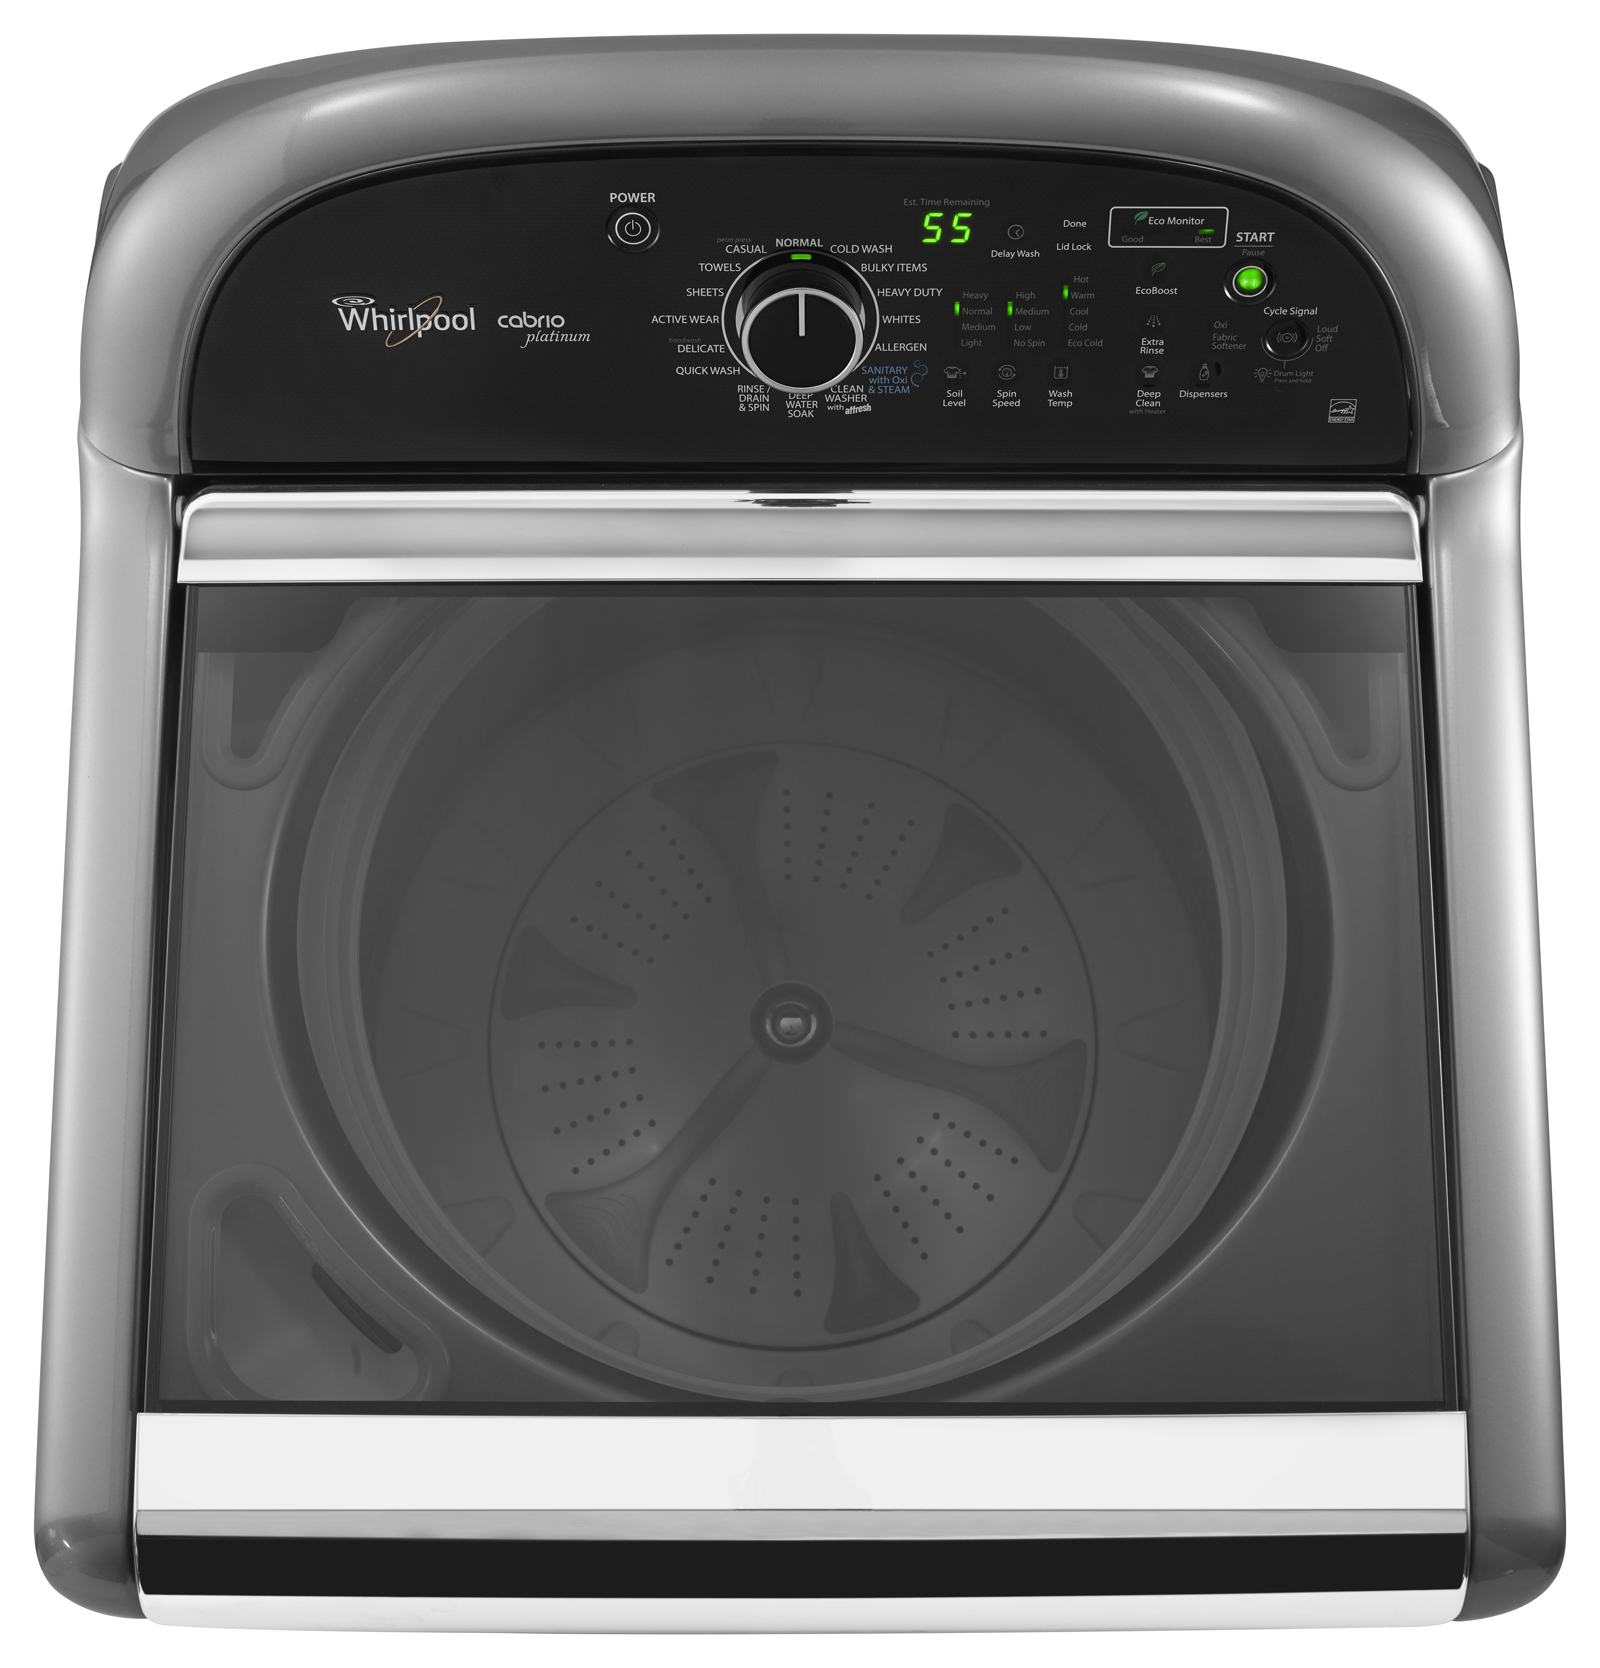 Whirlpool 4.8 cu. ft. Cabrio® Platinum HE Top-Load Washer w/ Sanitary Cycle - Chrome Shadow